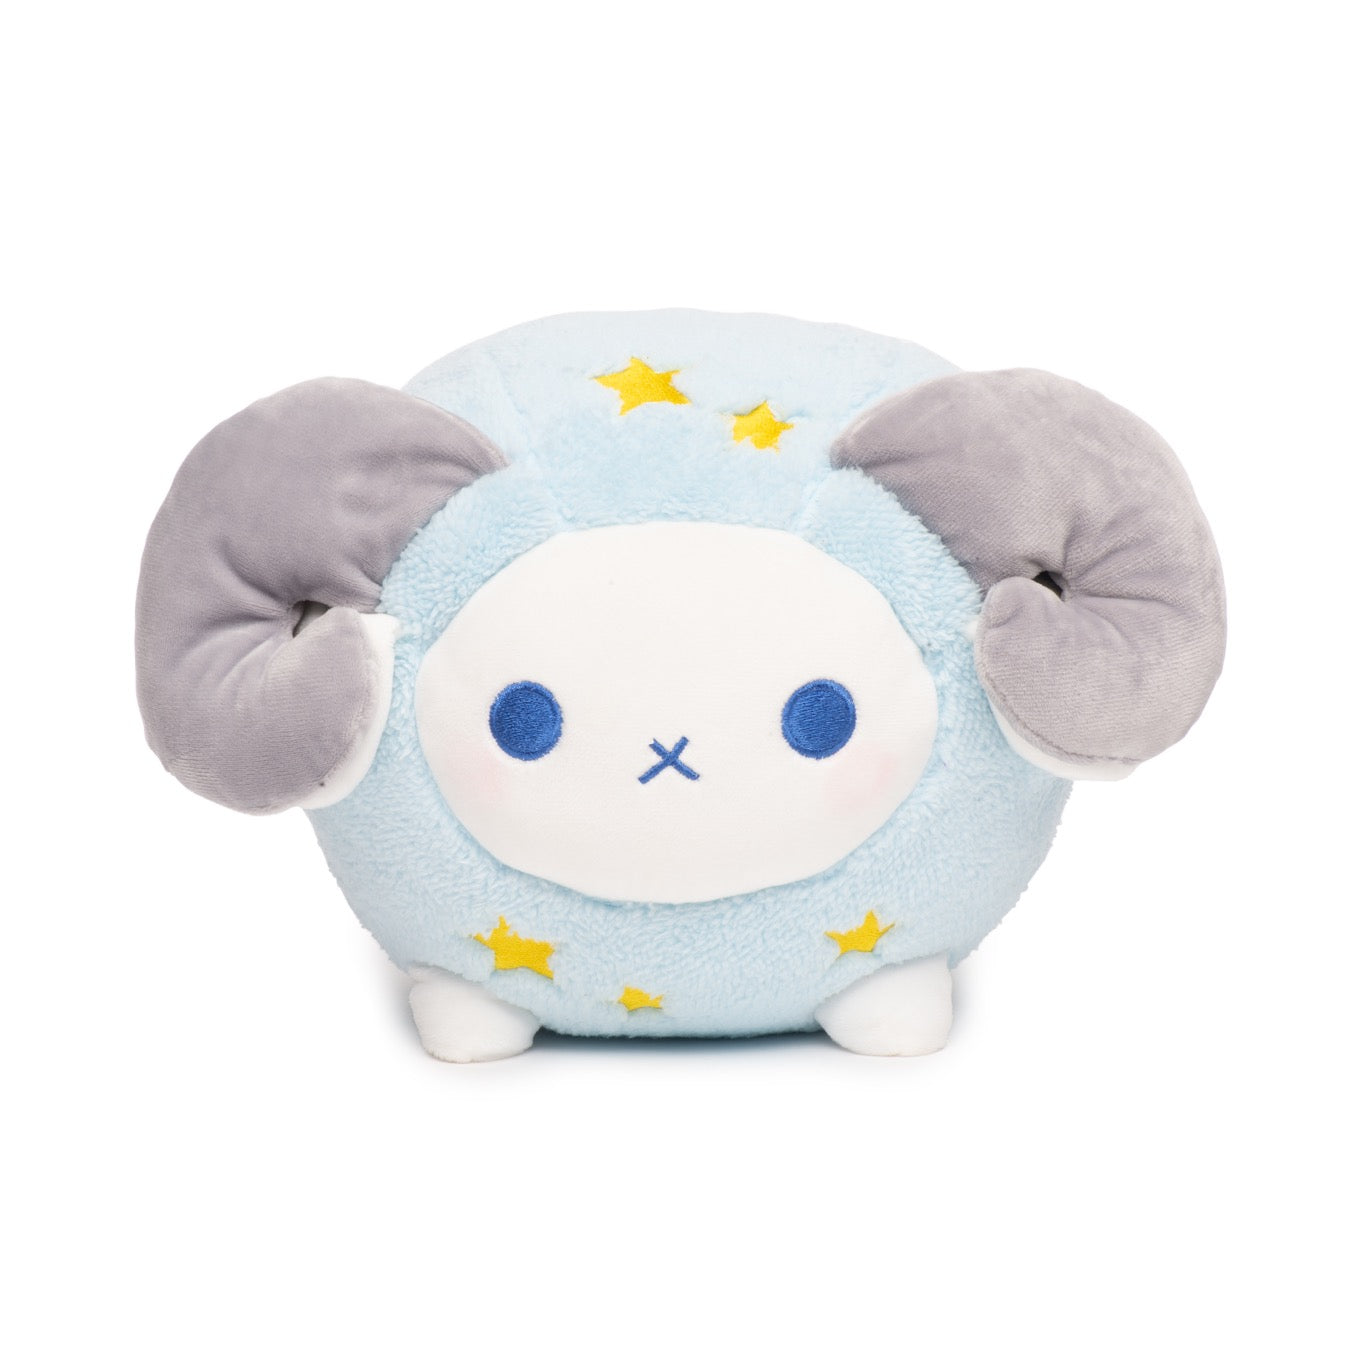 Giant Blue Solram Plush